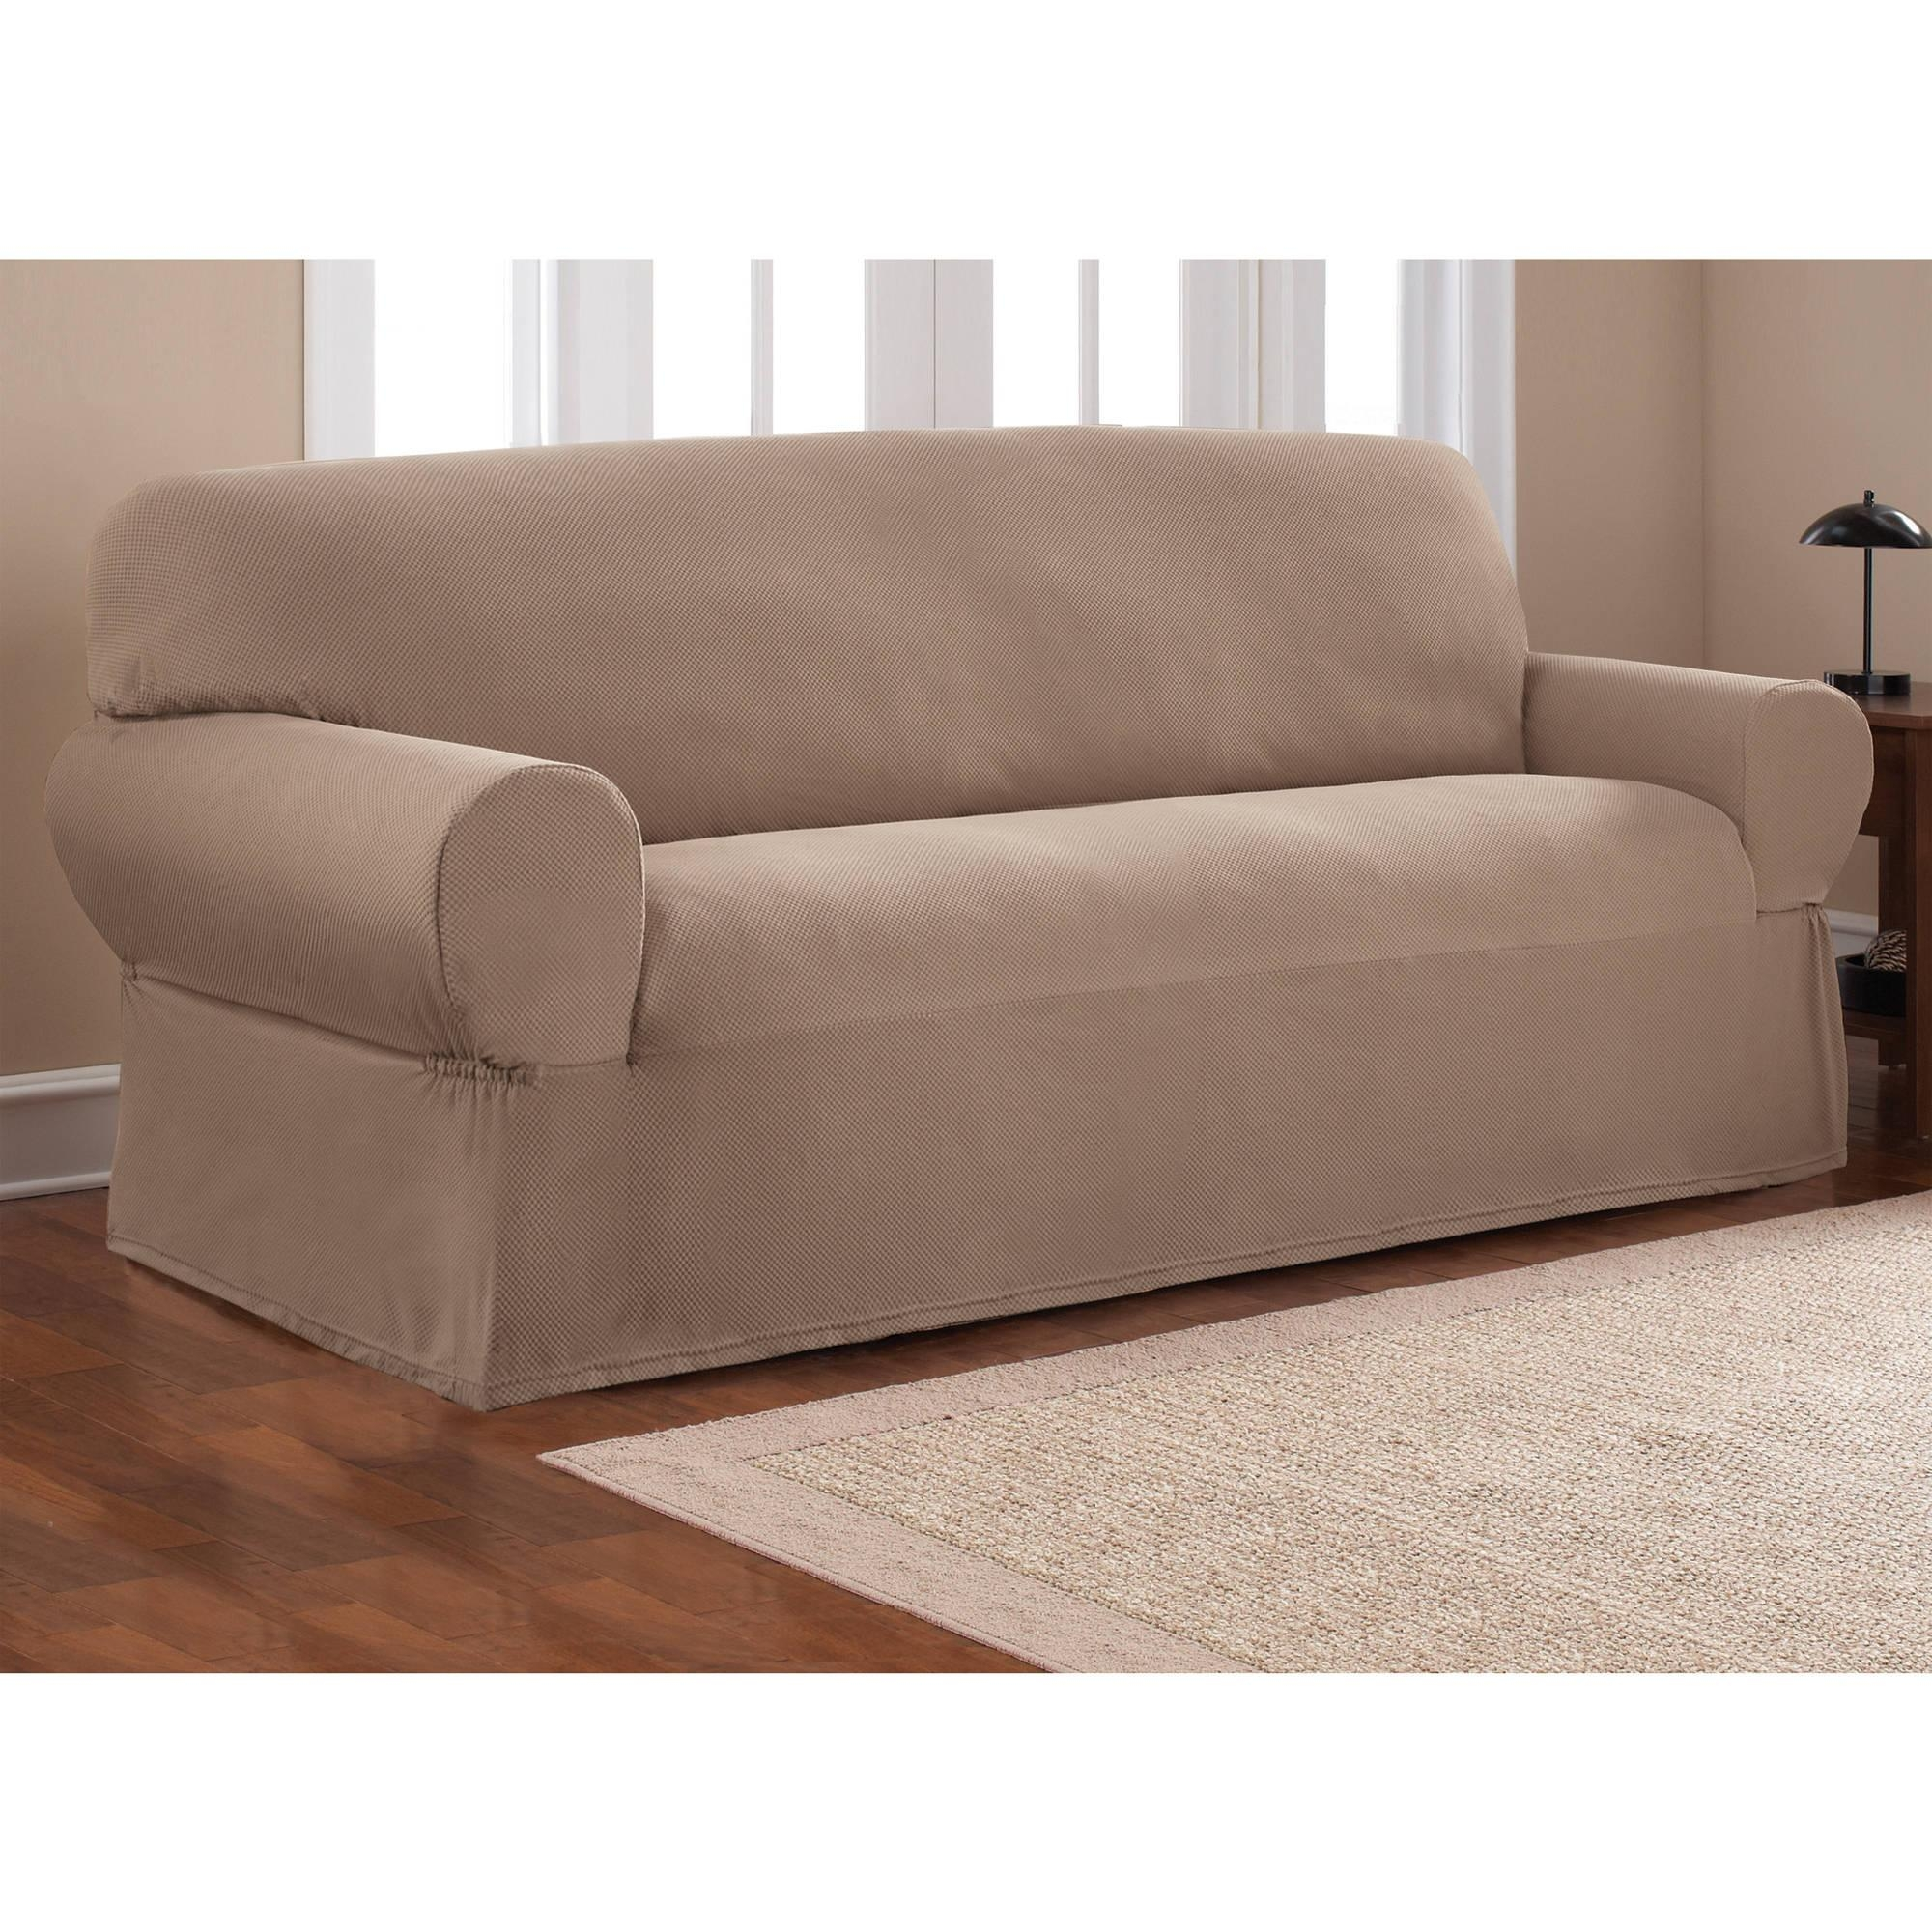 Mainstays 1 Piece Stretch Fabric Sofa Slipcover – Walmart With Regard To Wallmart Sofa (Image 13 of 20)